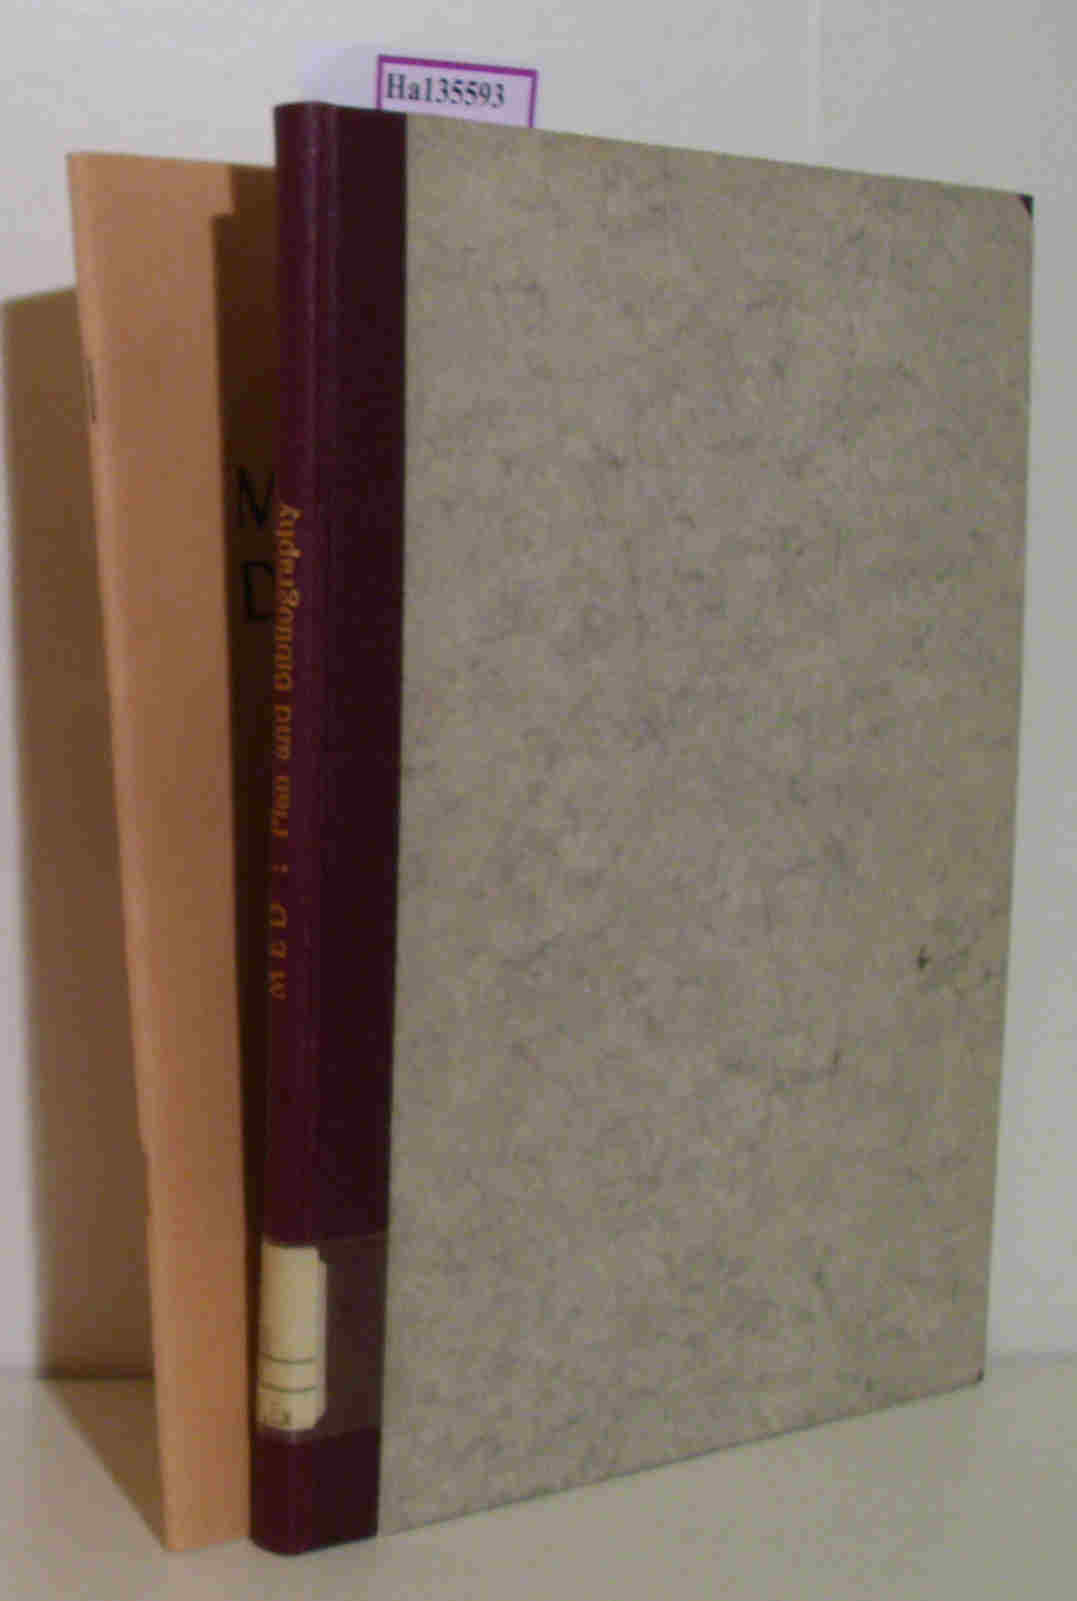 Middle English Dictionary. 2 vols. Vol.1: Plan and Bibliography. Vol.2: Plan and Bibliography, Supplement I.